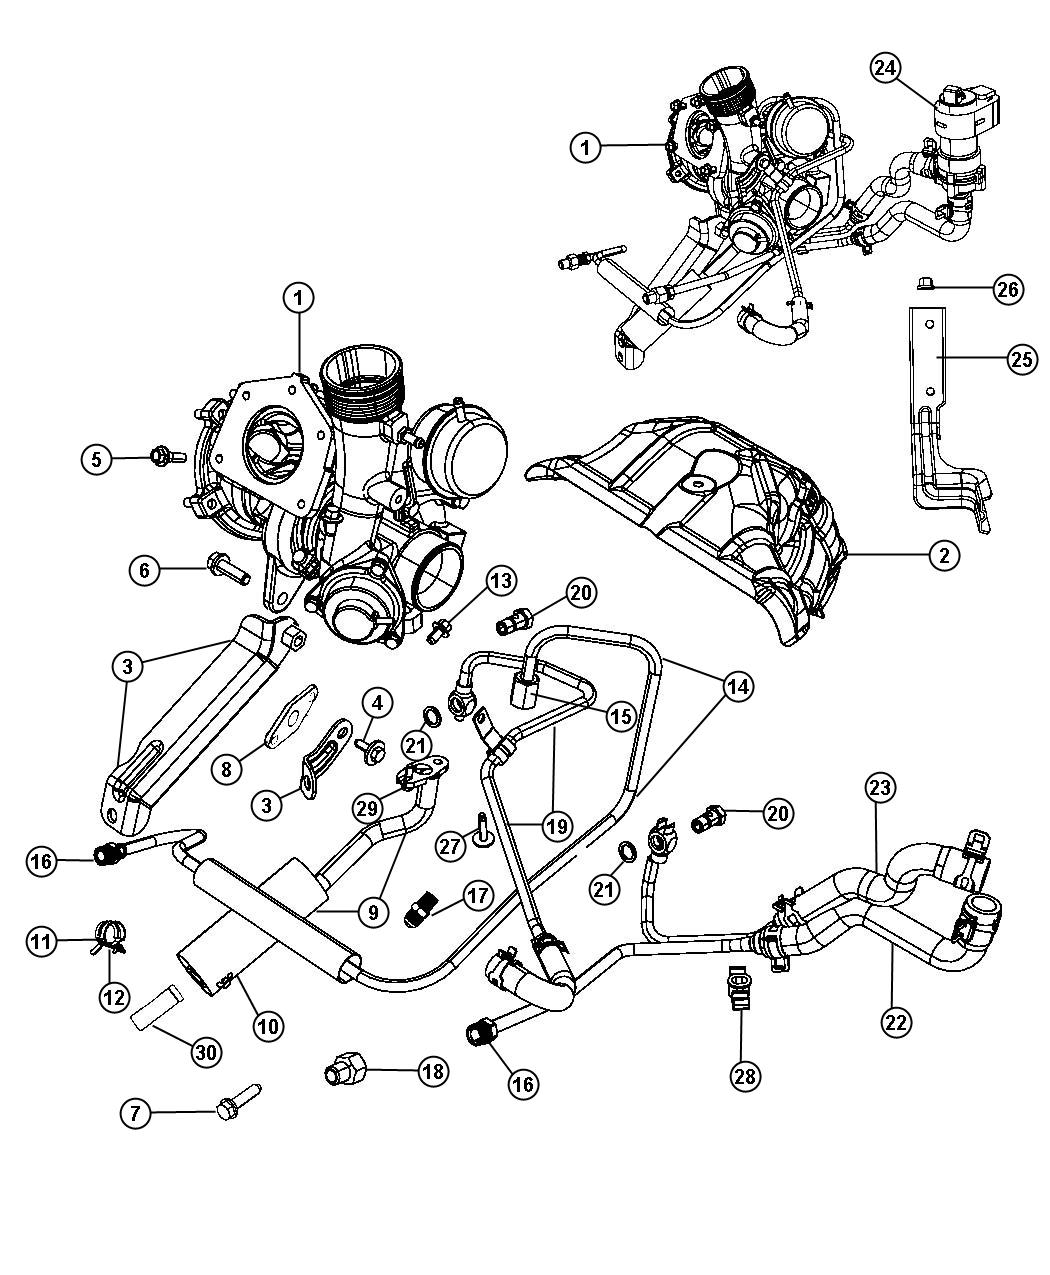 Dodge Avenger Thermostat Location Diagram